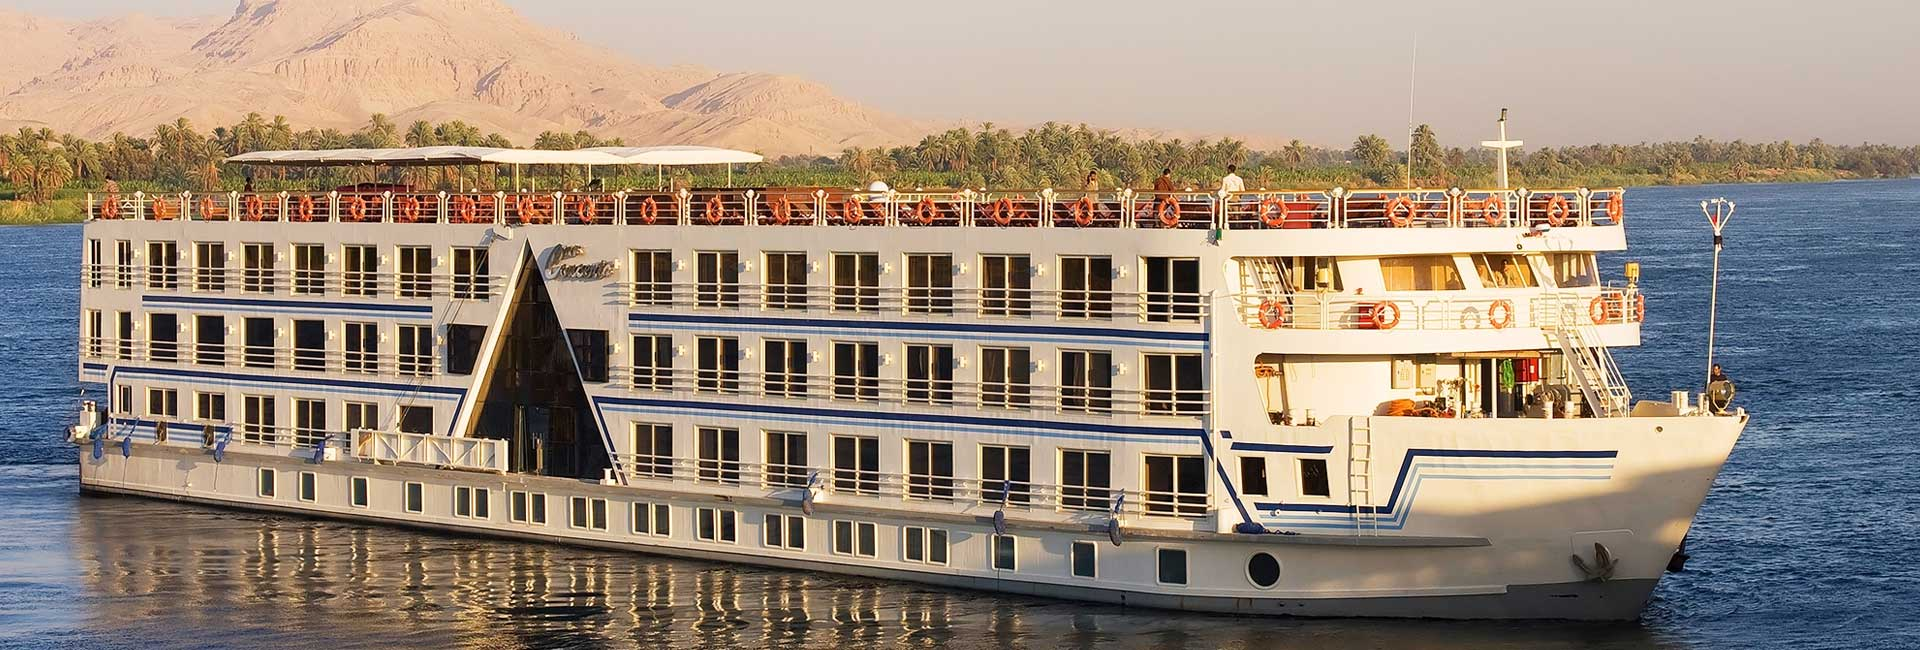 Nile Cruise Gratuities And Tipping